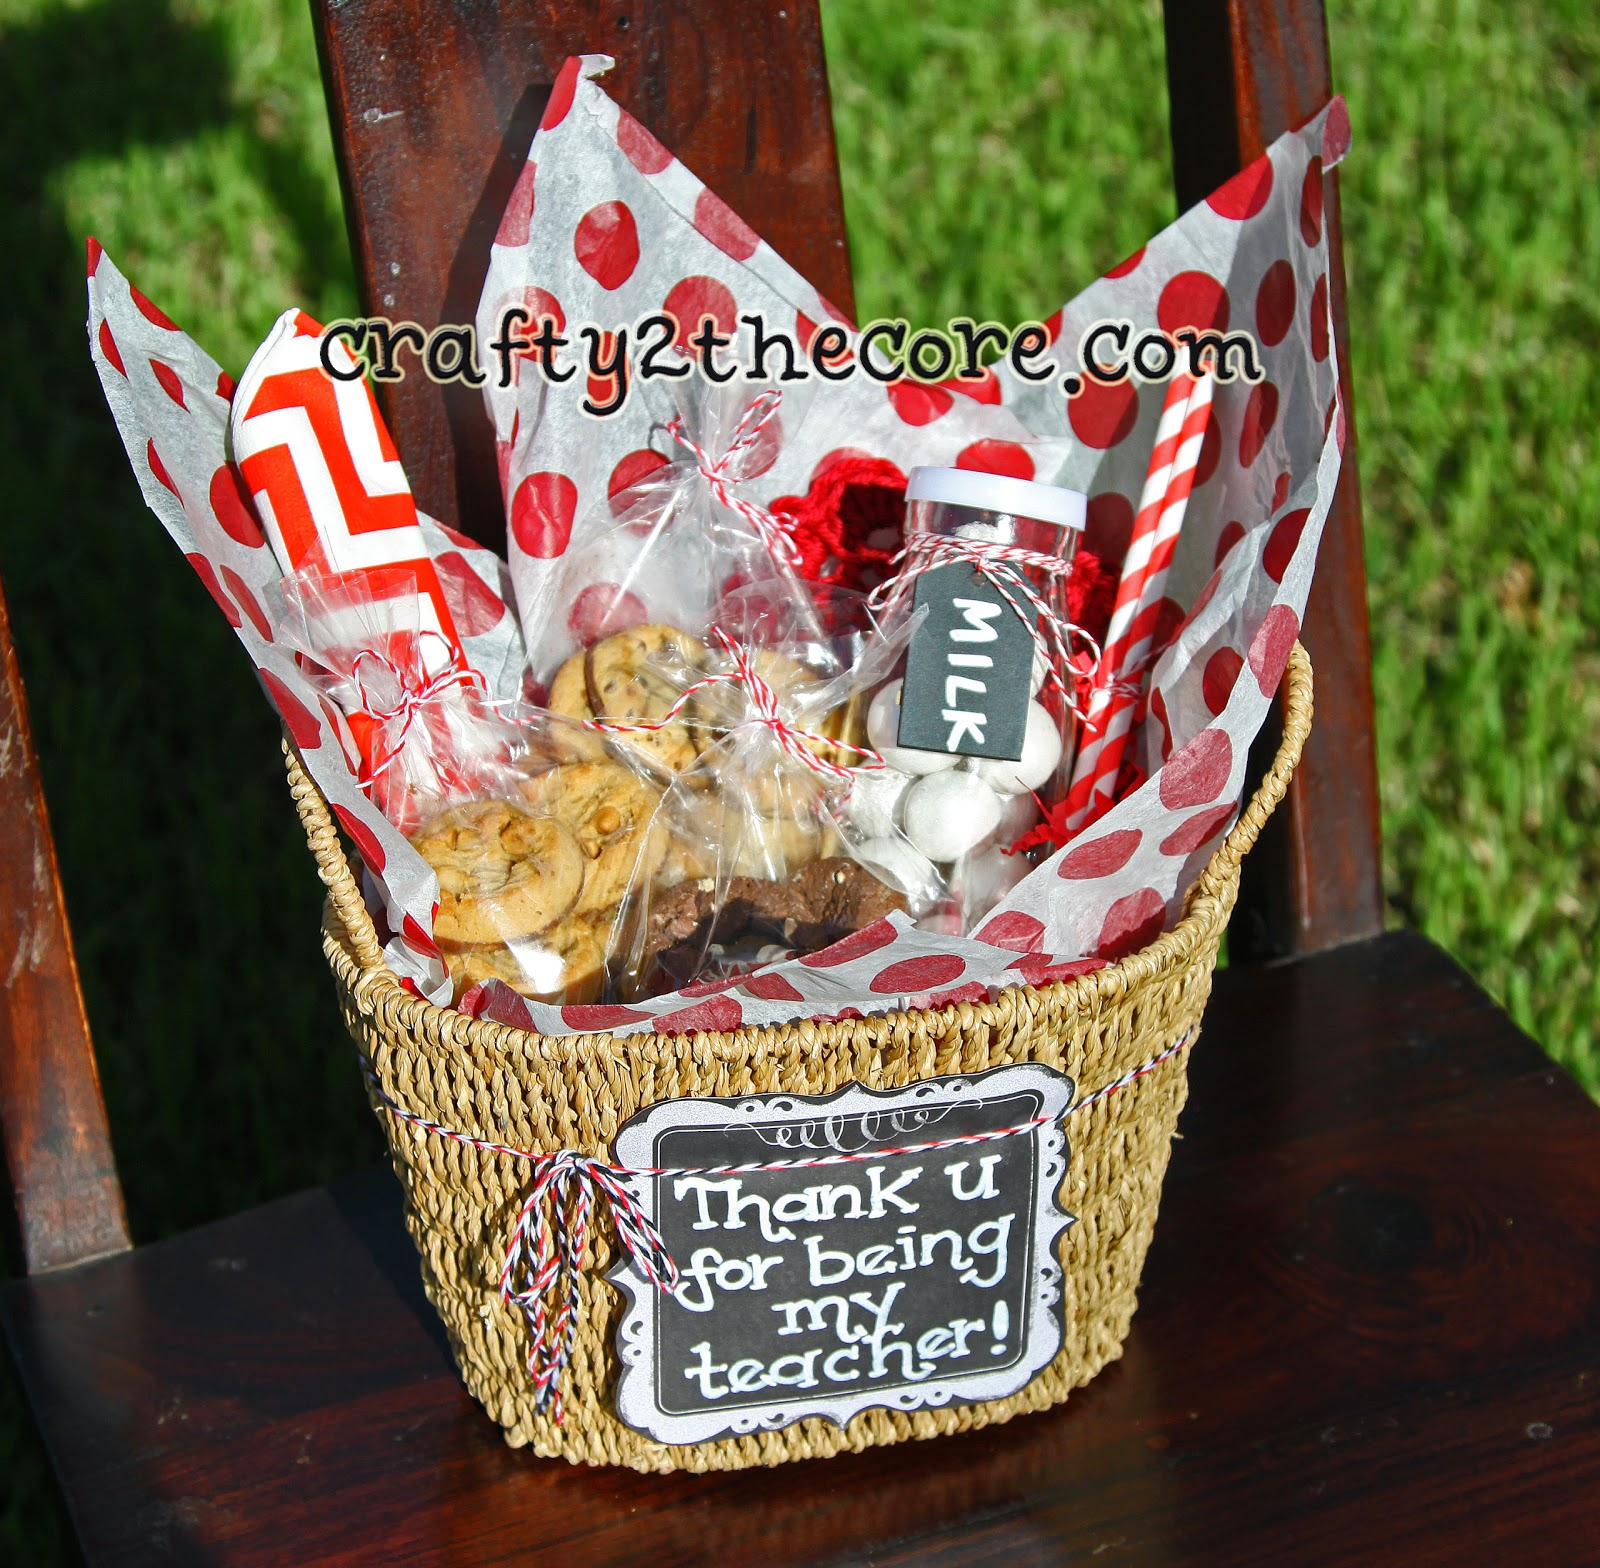 Teacher Gift Idea with new Mrs. Field's Nibbler Cookies, milk jar, straws, napkin, crochet coaster.